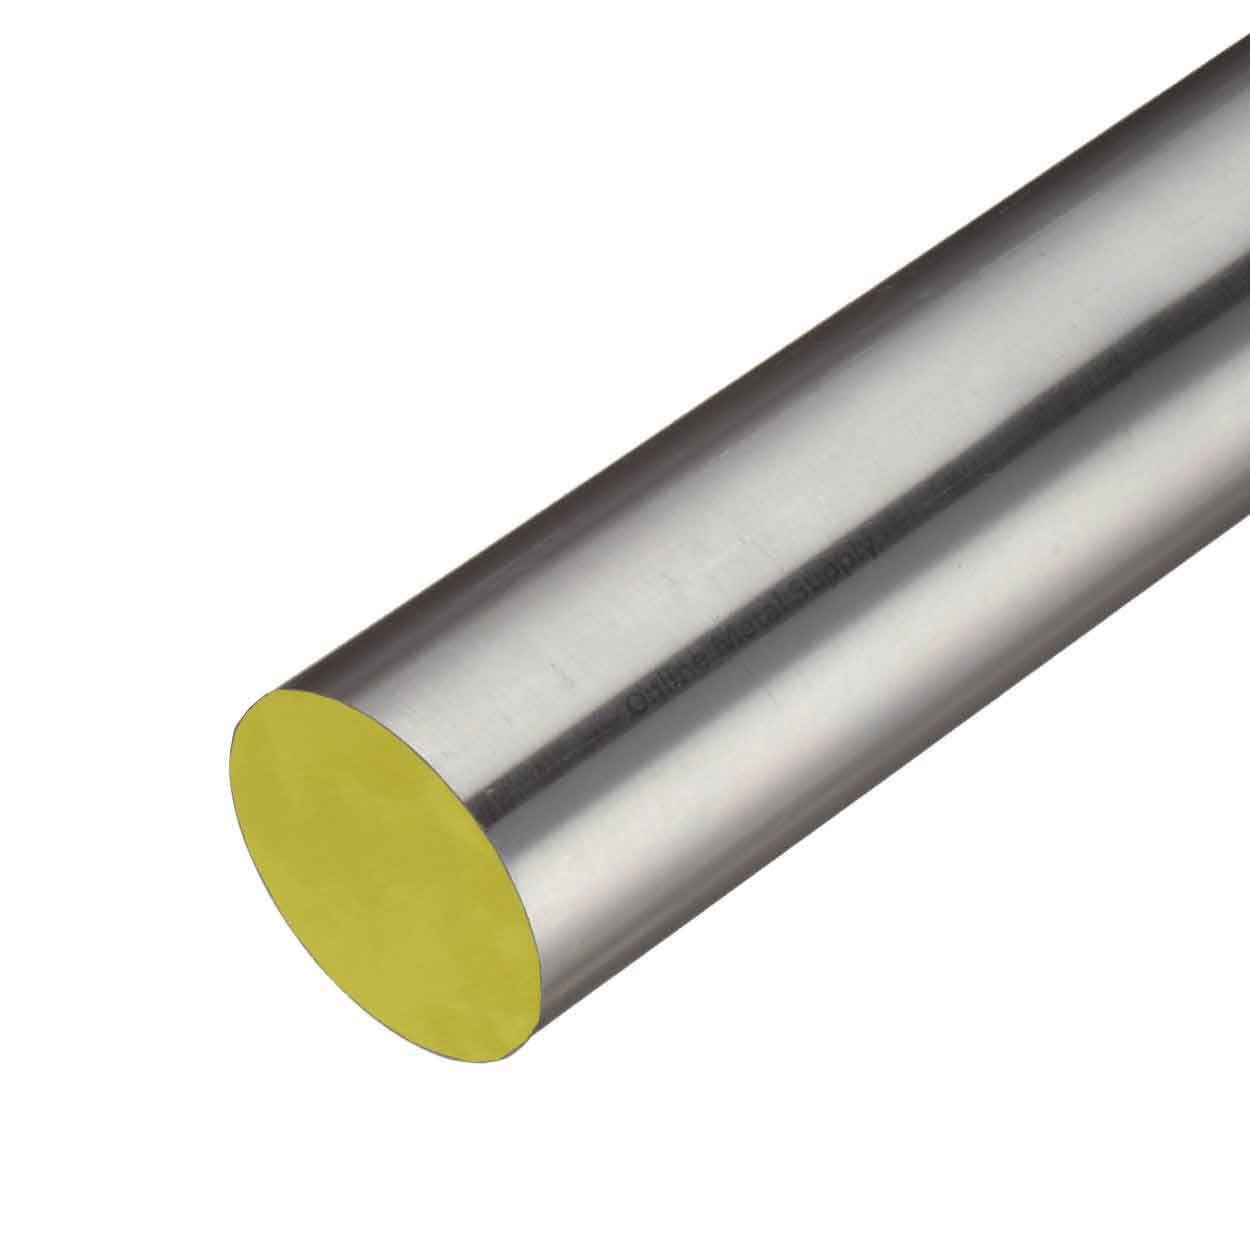 Online Metal Supply 316 Stainless Steel Round Rod, 1.000 (1 inch) x 18 inches